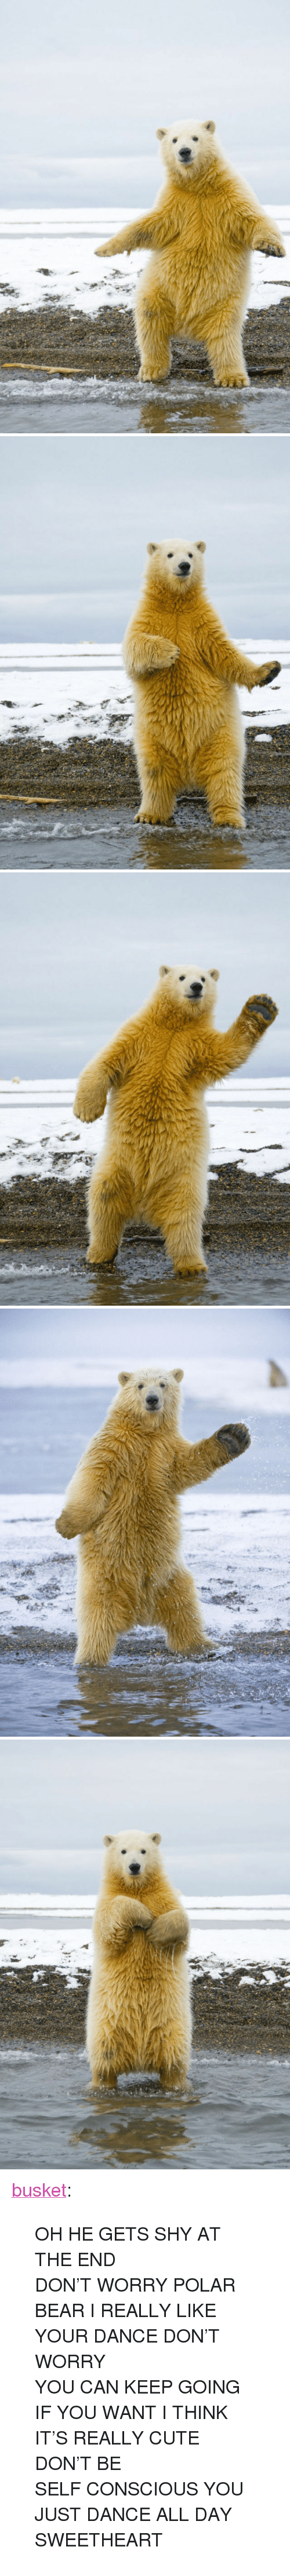 "just dance: <p><a class=""tumblr_blog"" href=""http://busket.tumblr.com/post/32647524575/oh-he-gets-shy-at-the-end-dont-worry-polar-bear"">busket</a>:</p><blockquote> <p>OH HE GETS SHY AT THE END</p> <p>DON'T WORRY POLAR BEAR I REALLY LIKE YOUR DANCE DON'T WORRY</p> <p>YOU CAN KEEP GOING IF YOU WANT I THINK IT'S REALLY CUTE</p> <p>DON'T BE SELF CONSCIOUS YOU JUST DANCE ALL DAY SWEETHEART</p> </blockquote>"